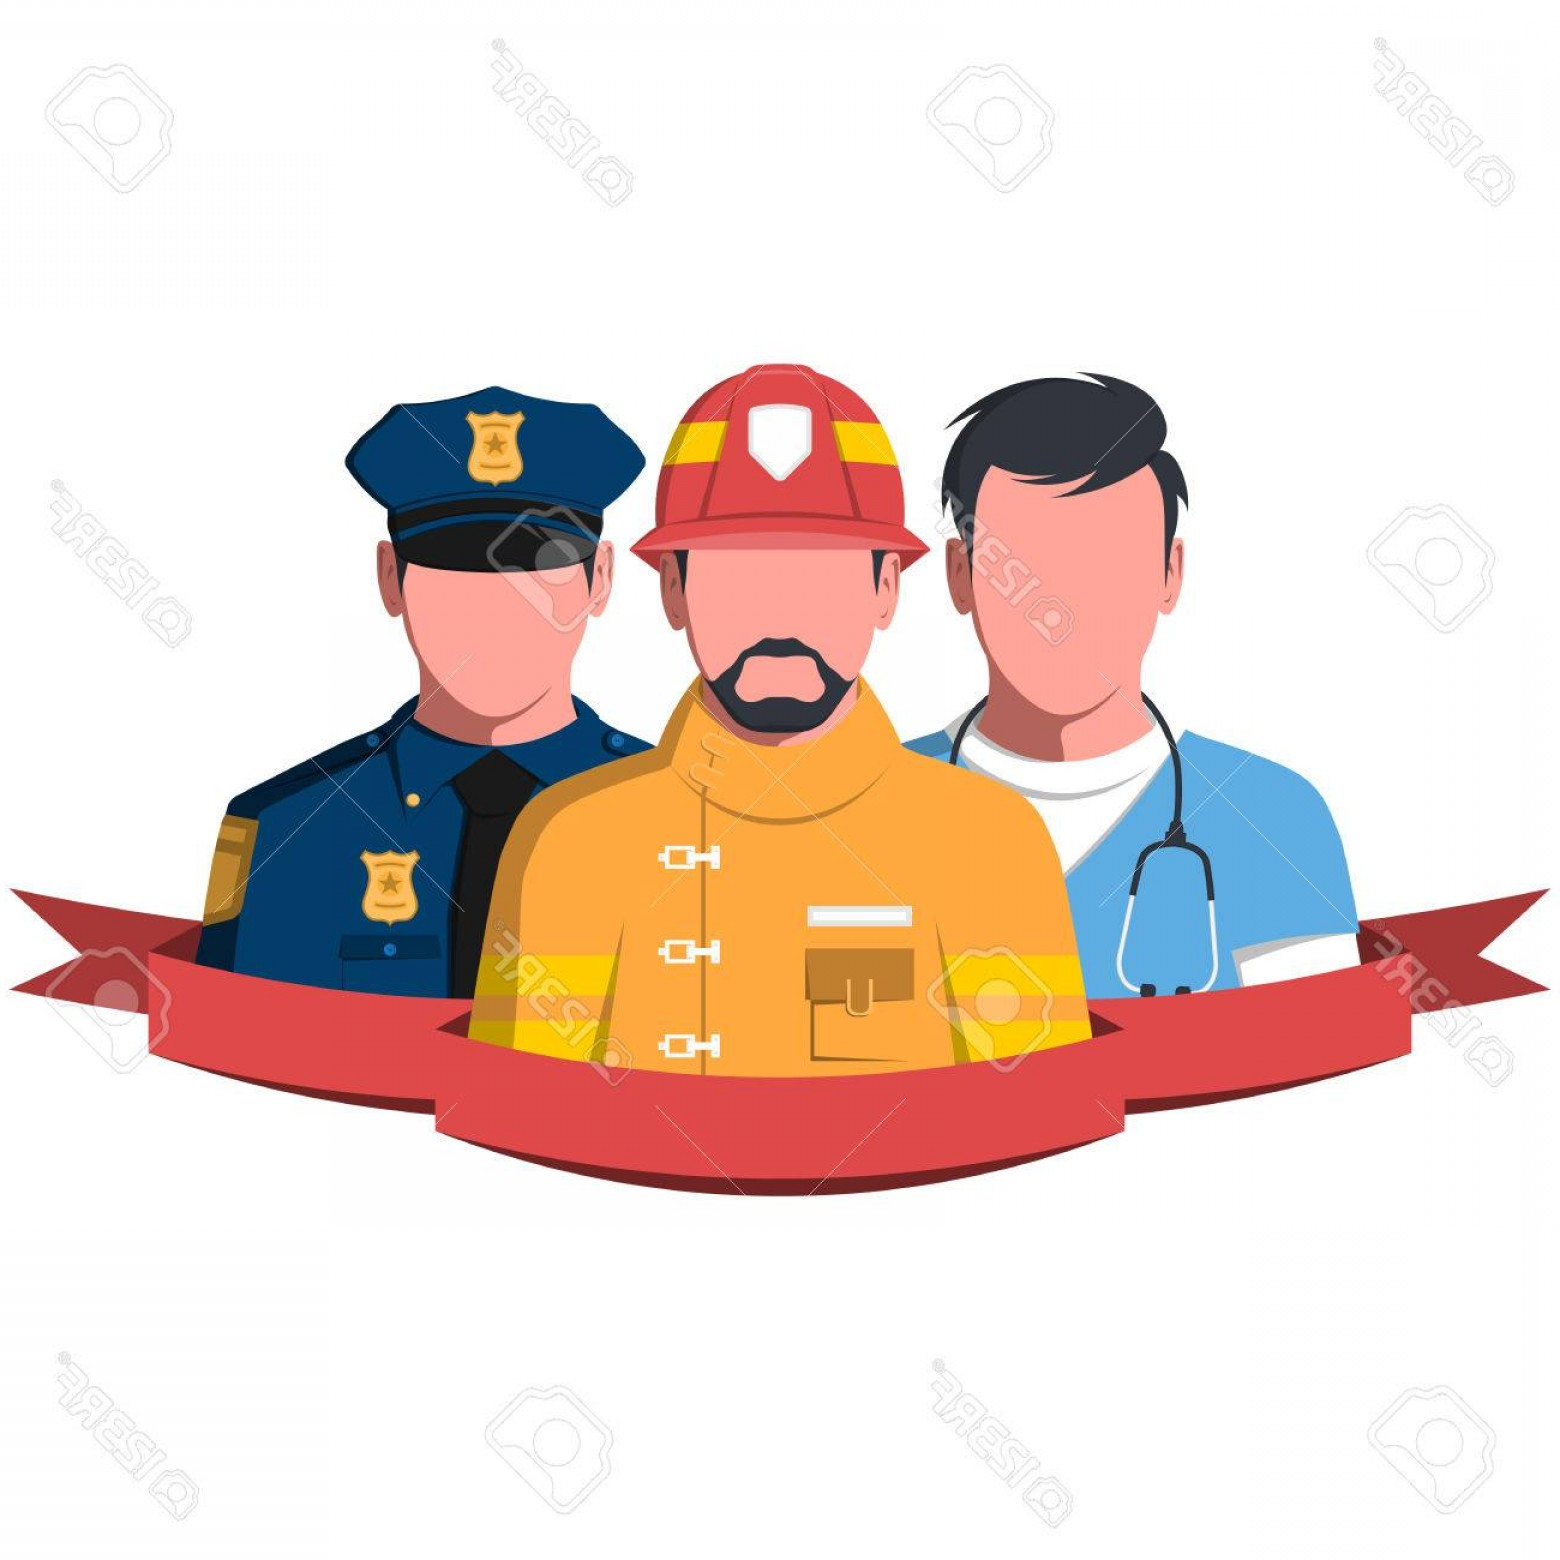 Jpeg clipart silhouette of emergency service patients clip art free stock Photostock Vector Silhouettes Of Rescue Workers People Of Emergency ... clip art free stock